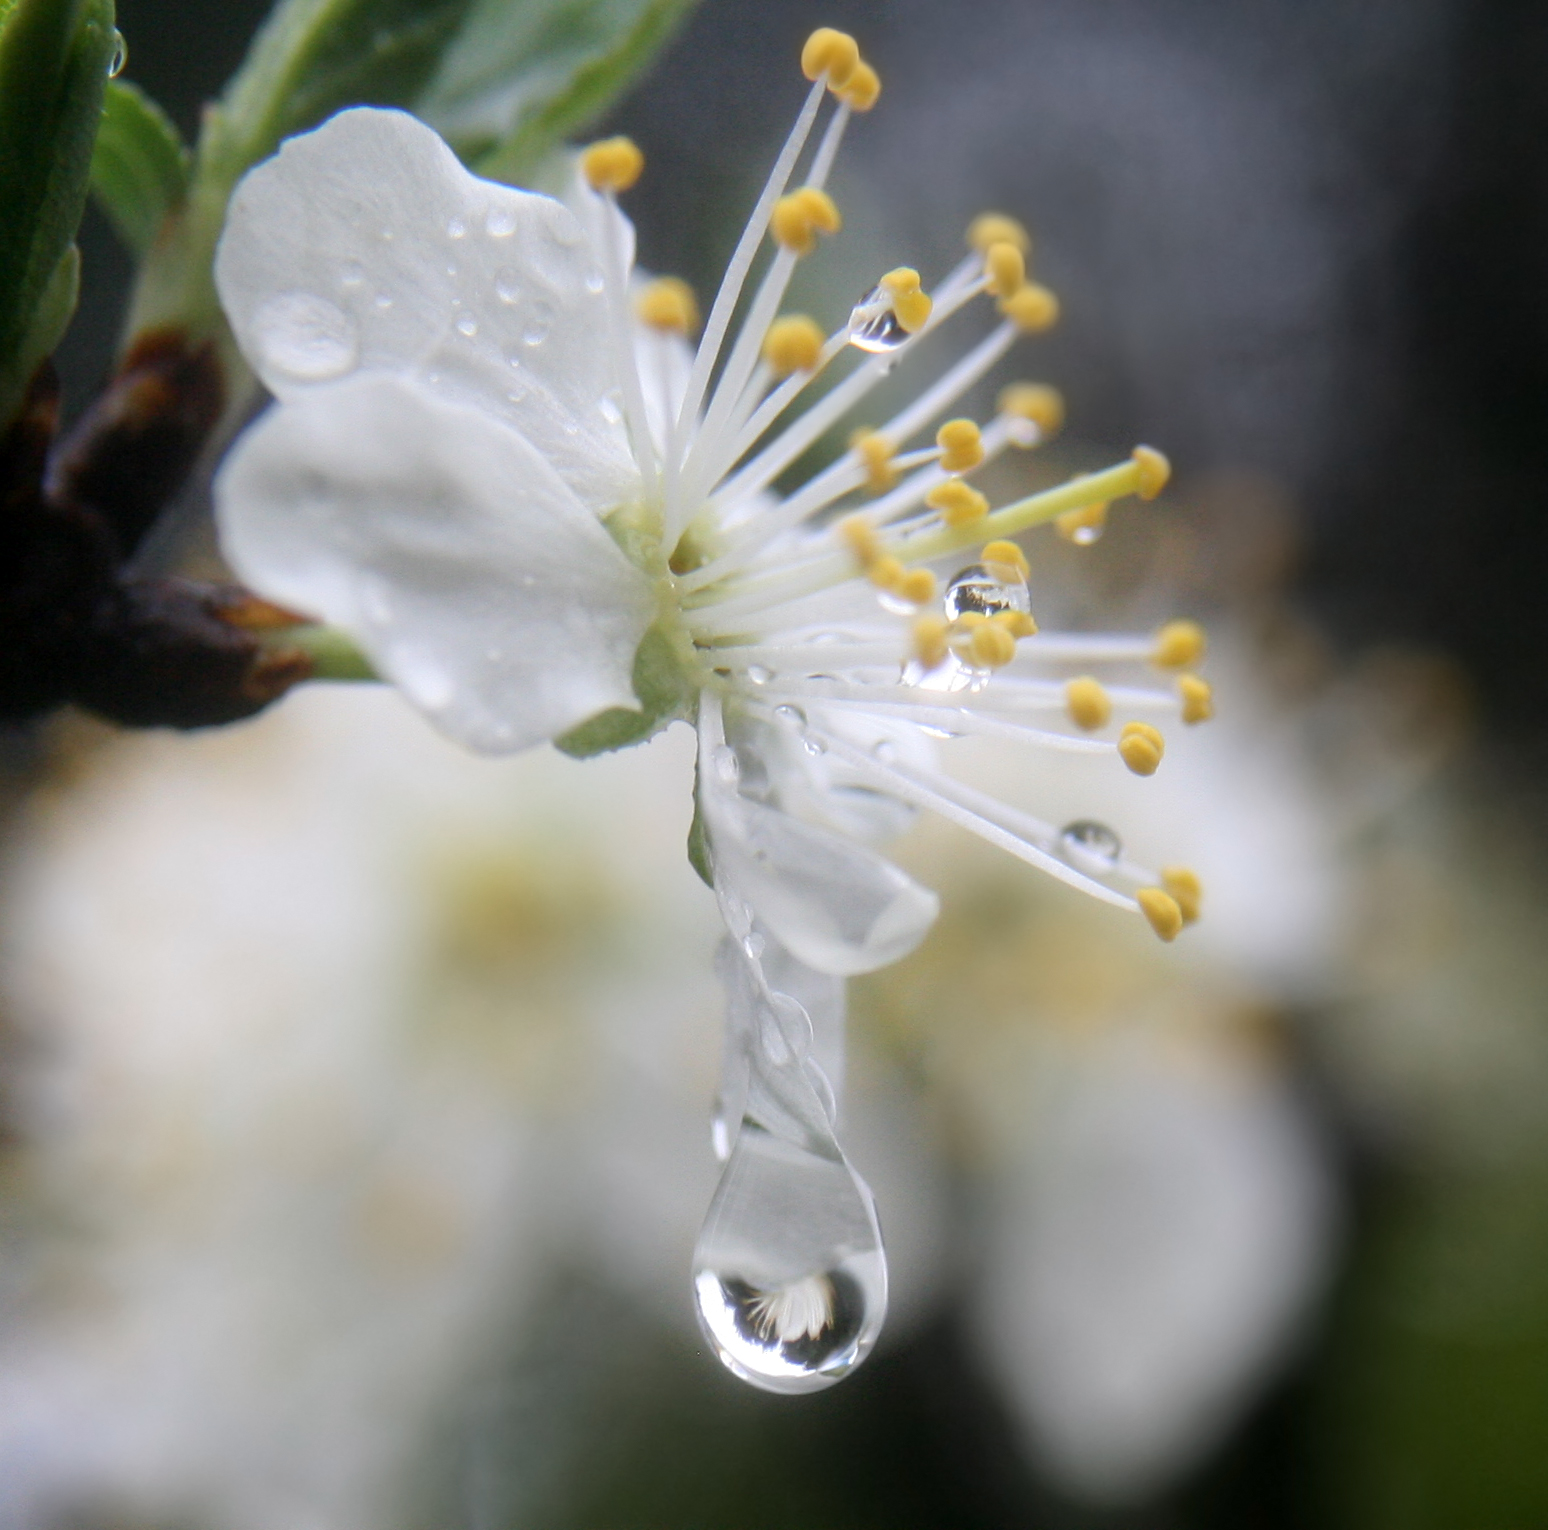 File A flower refracted in rain droplets